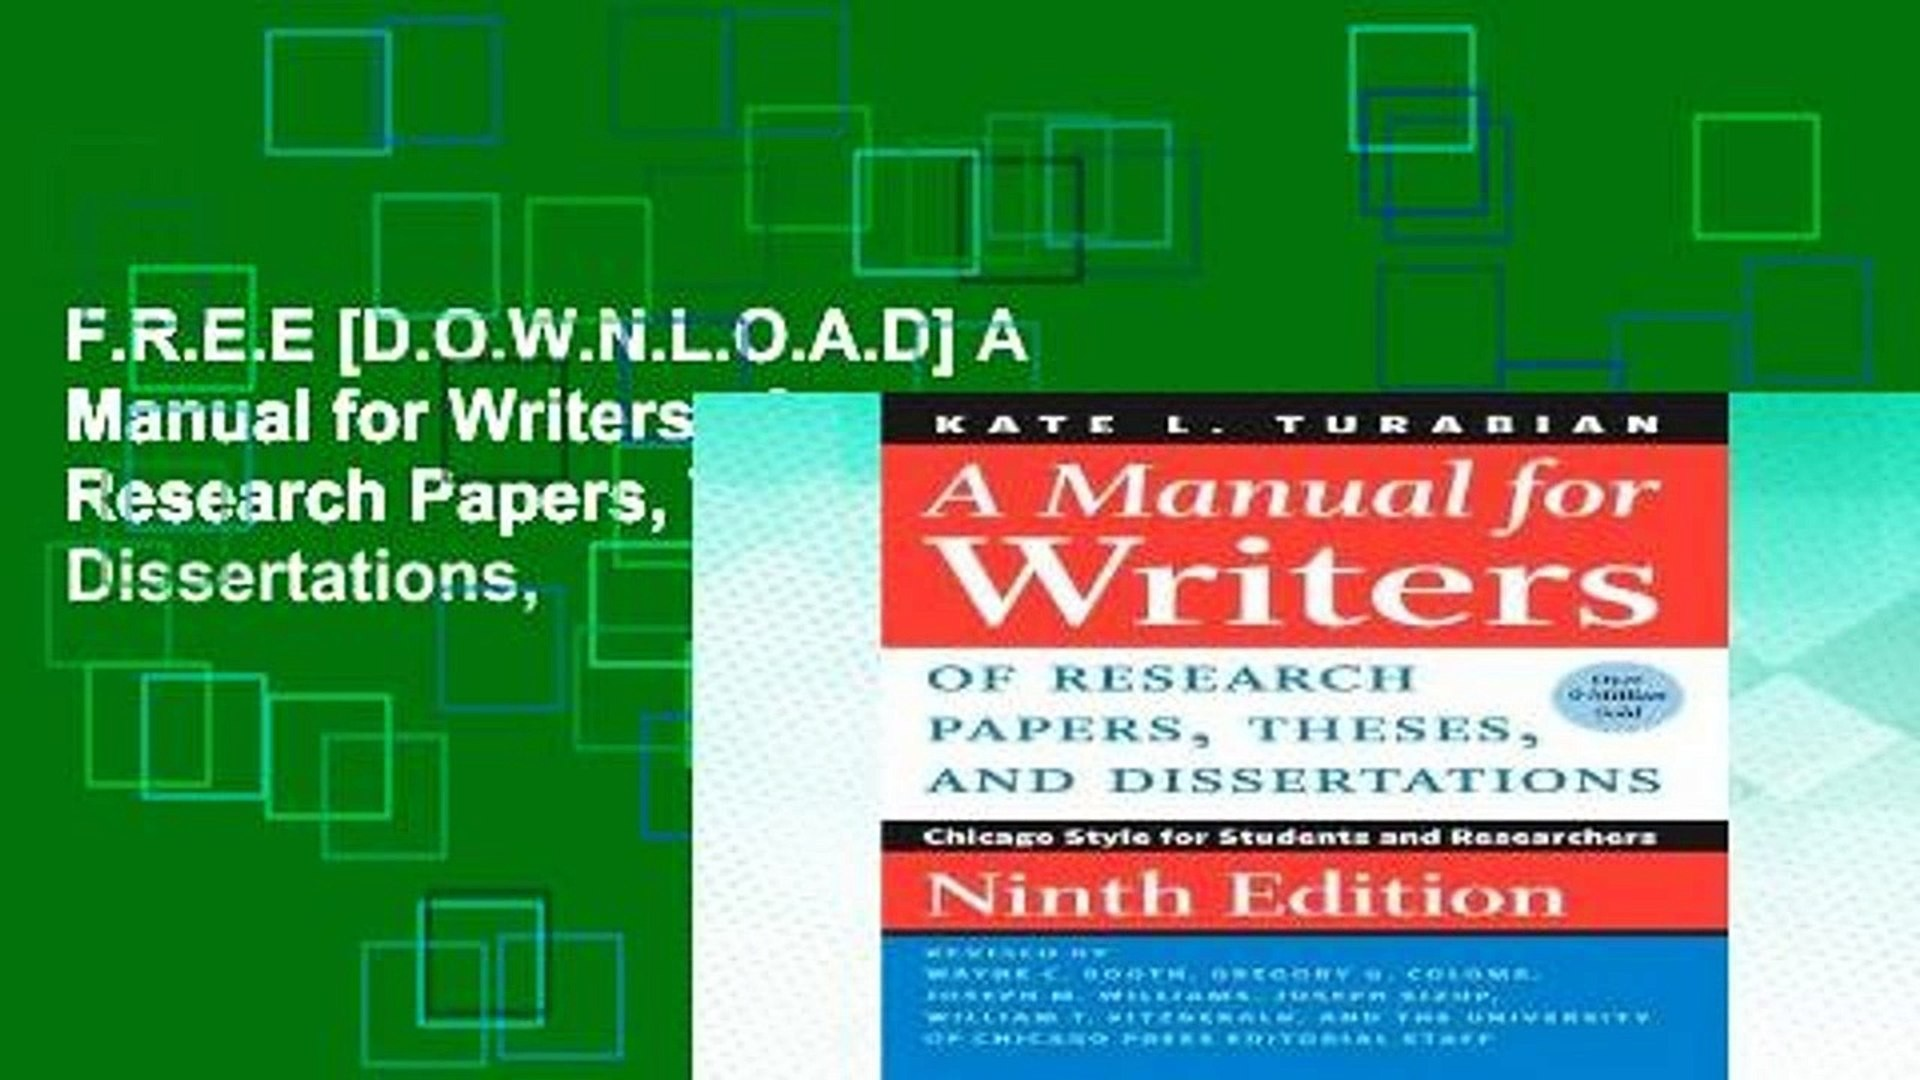 013 X1080 Kcn Research Paper Manual For Writers Of Papers Theses And Magnificent Dissertations A Amazon 9th Edition 8th 13 1920